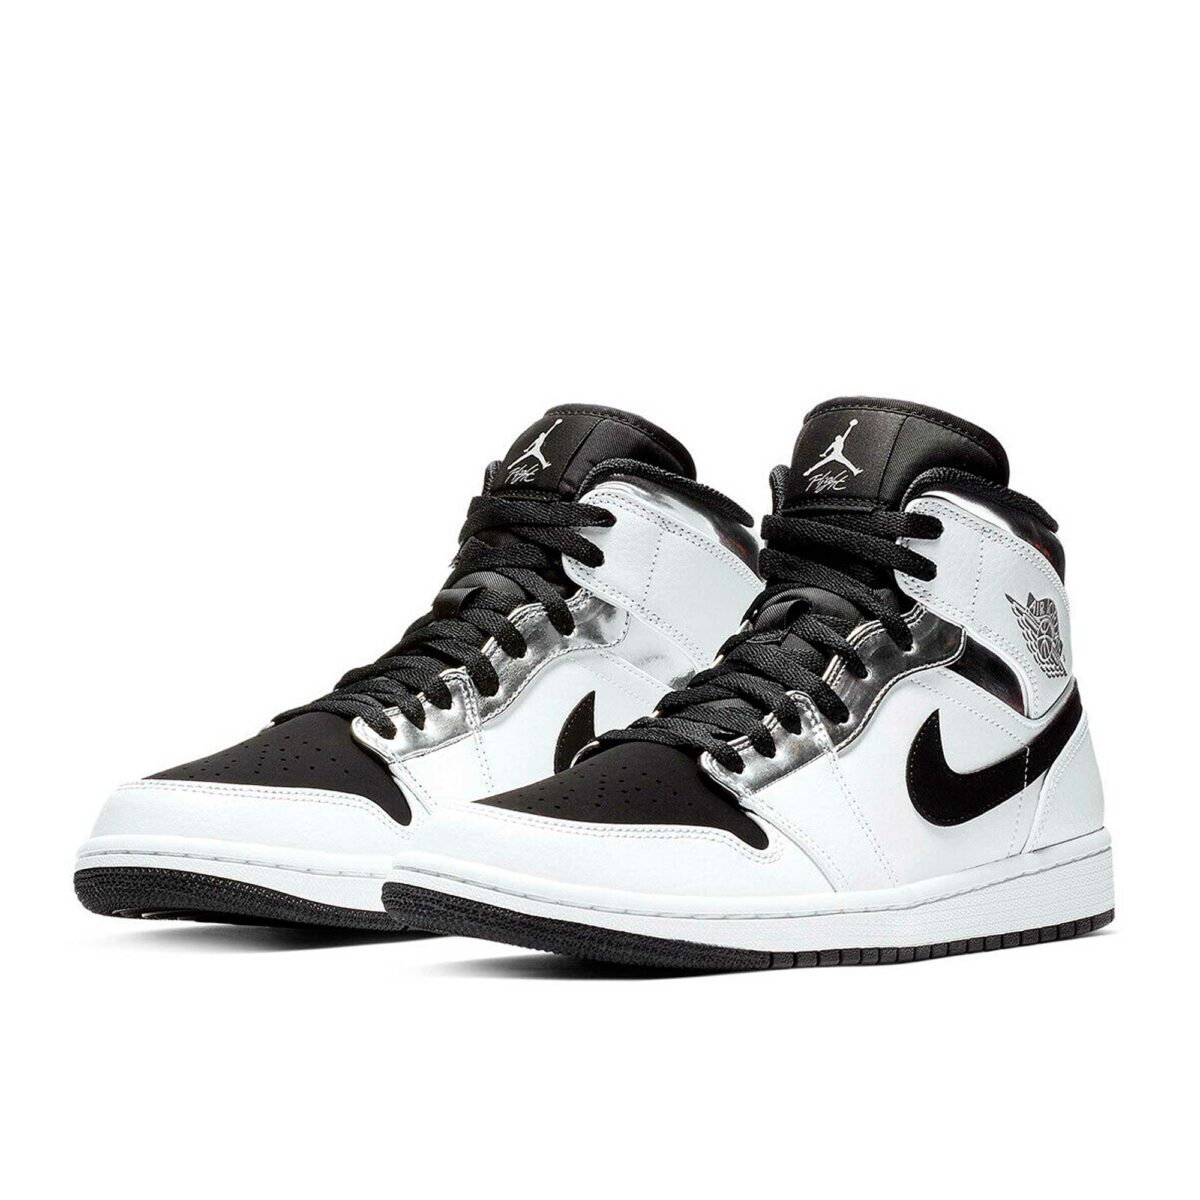 nike air jordan 1 retro hight white silver 554724_121 купить